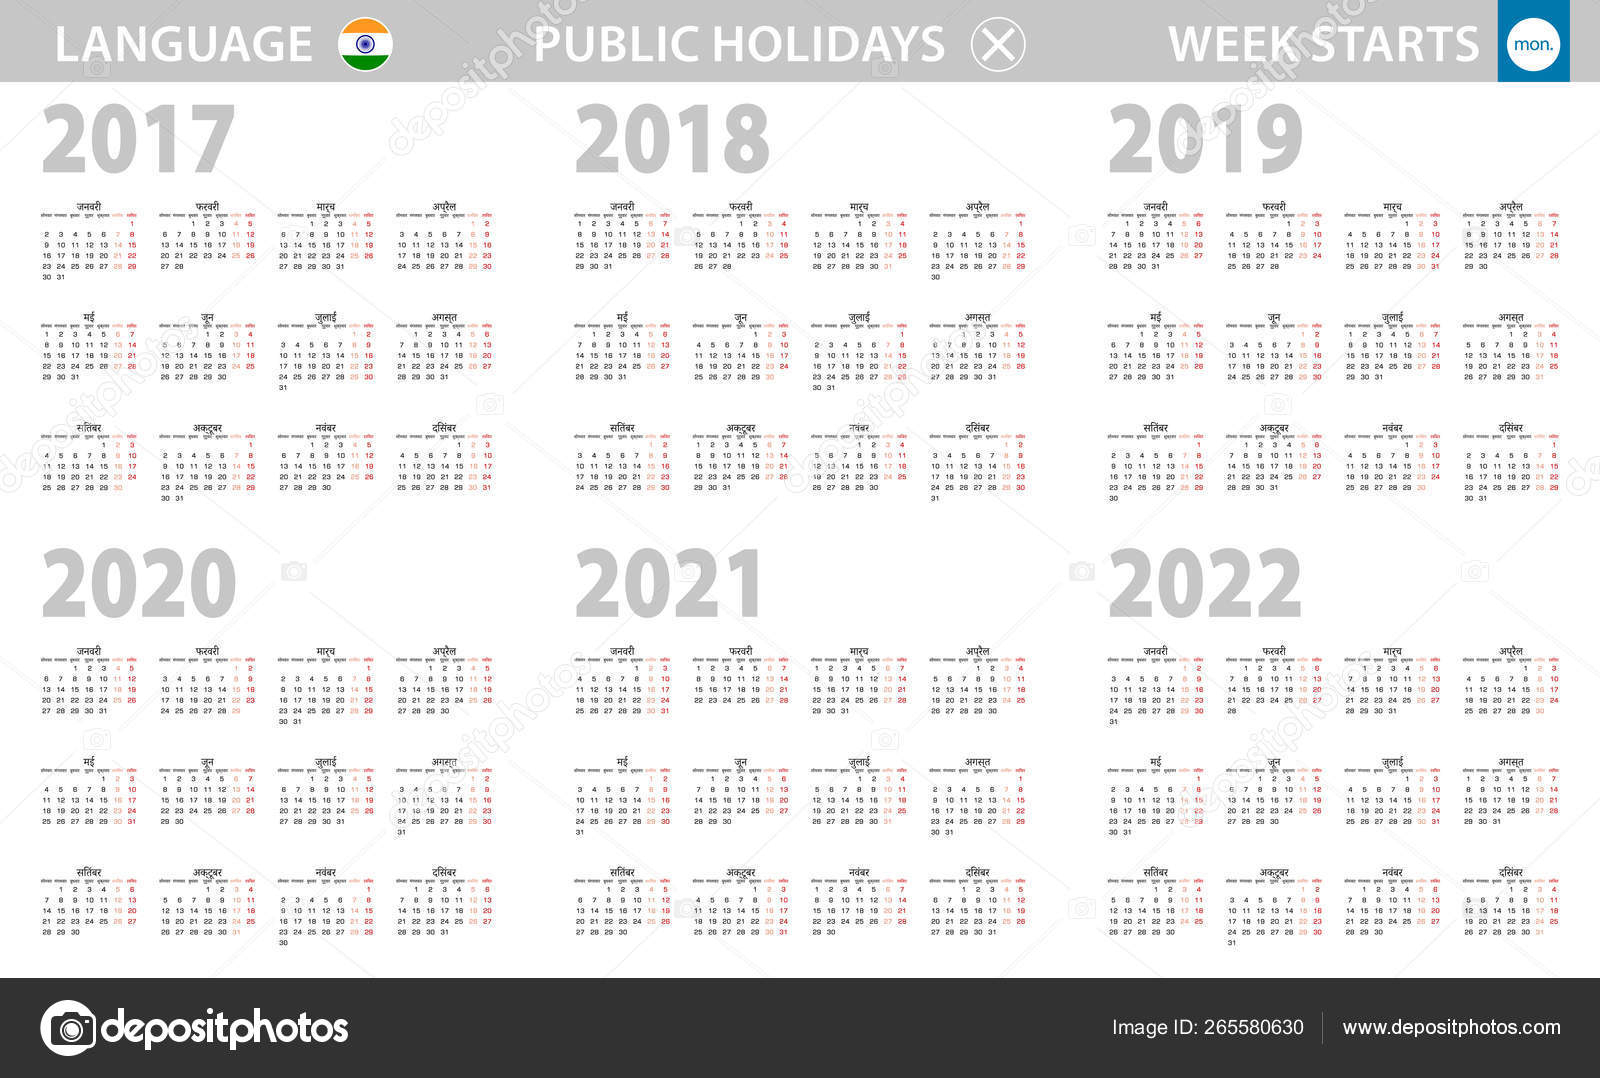 Calendar In Hindi Language For Year 2017, 2018, 2019, 2020, 2021